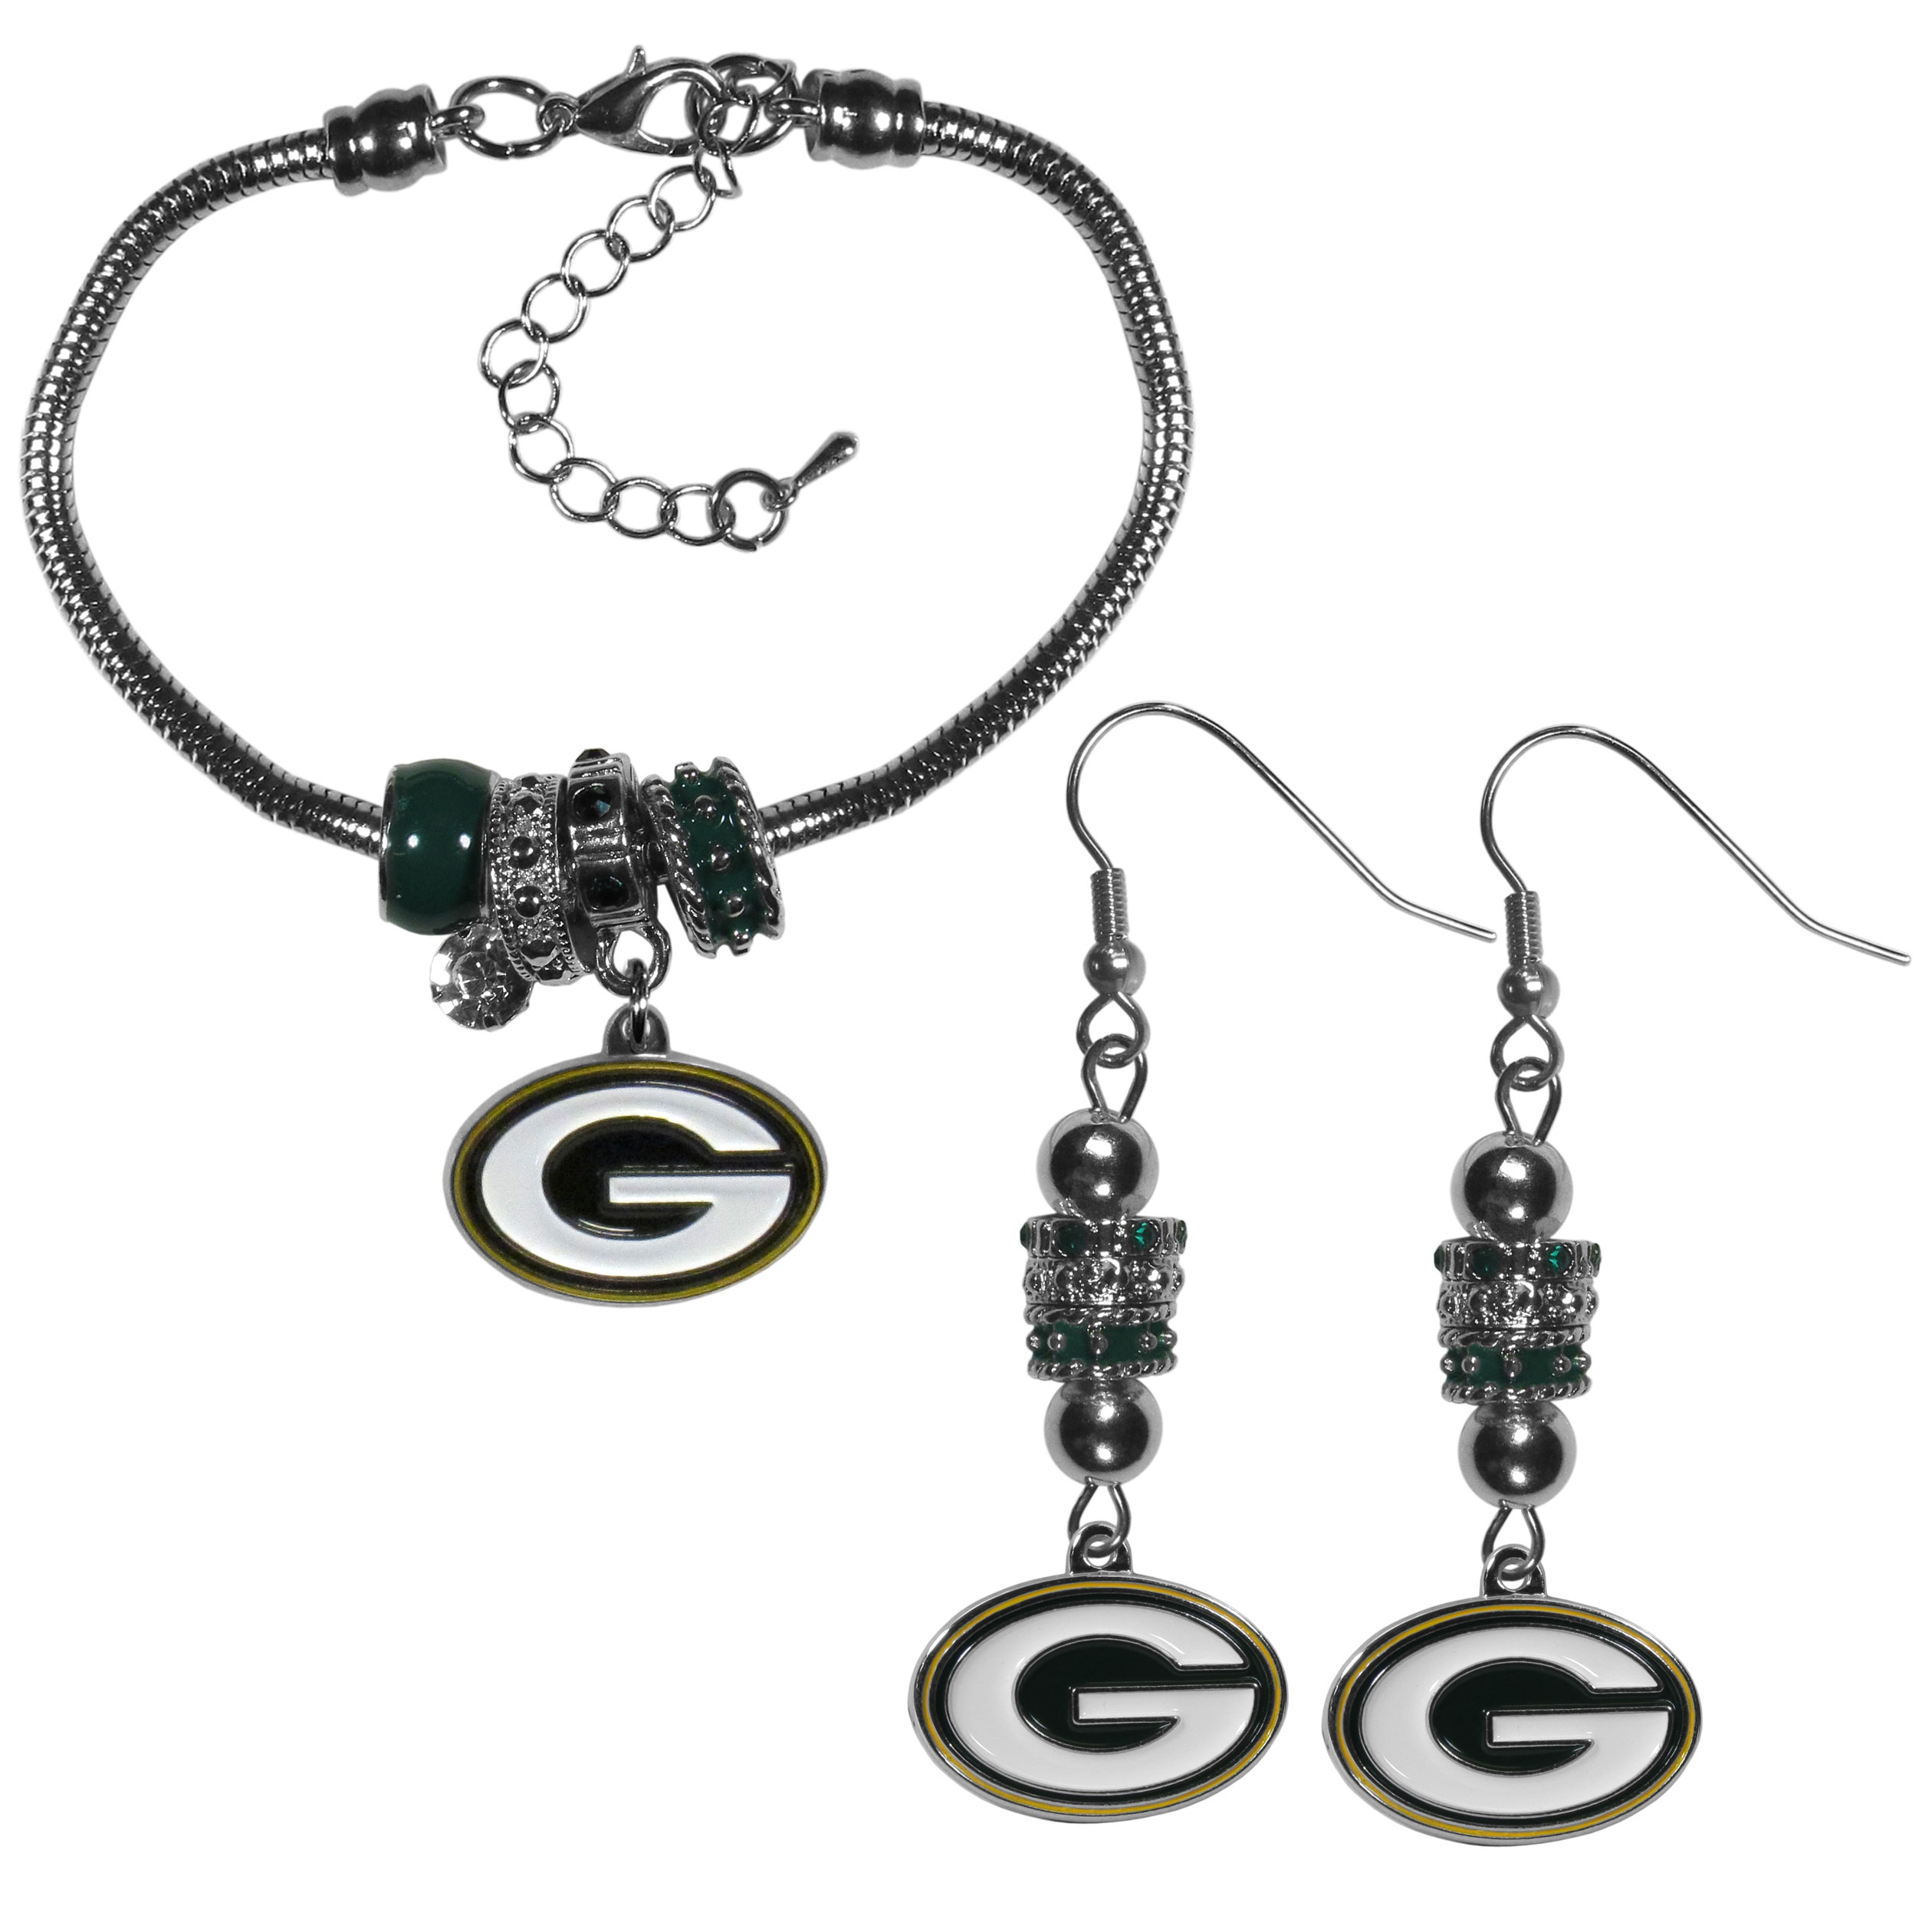 Green Bay Packers Euro Bead Earrings and Bracelet Set - We combine the popular Euro bead style with your love of the Green Bay Packers with this beautiful jewelry set that includes earrings and a matching bracelet. The stylish earrings feature hypoallergenic, nickel free fishhook posts and 3 team colored Euro beads and a metal team charm. The matching snake chain bracelet is 7.5 inches long with a 2 inch extender and 4 Euro beads with a rhinestone charm and team charm.